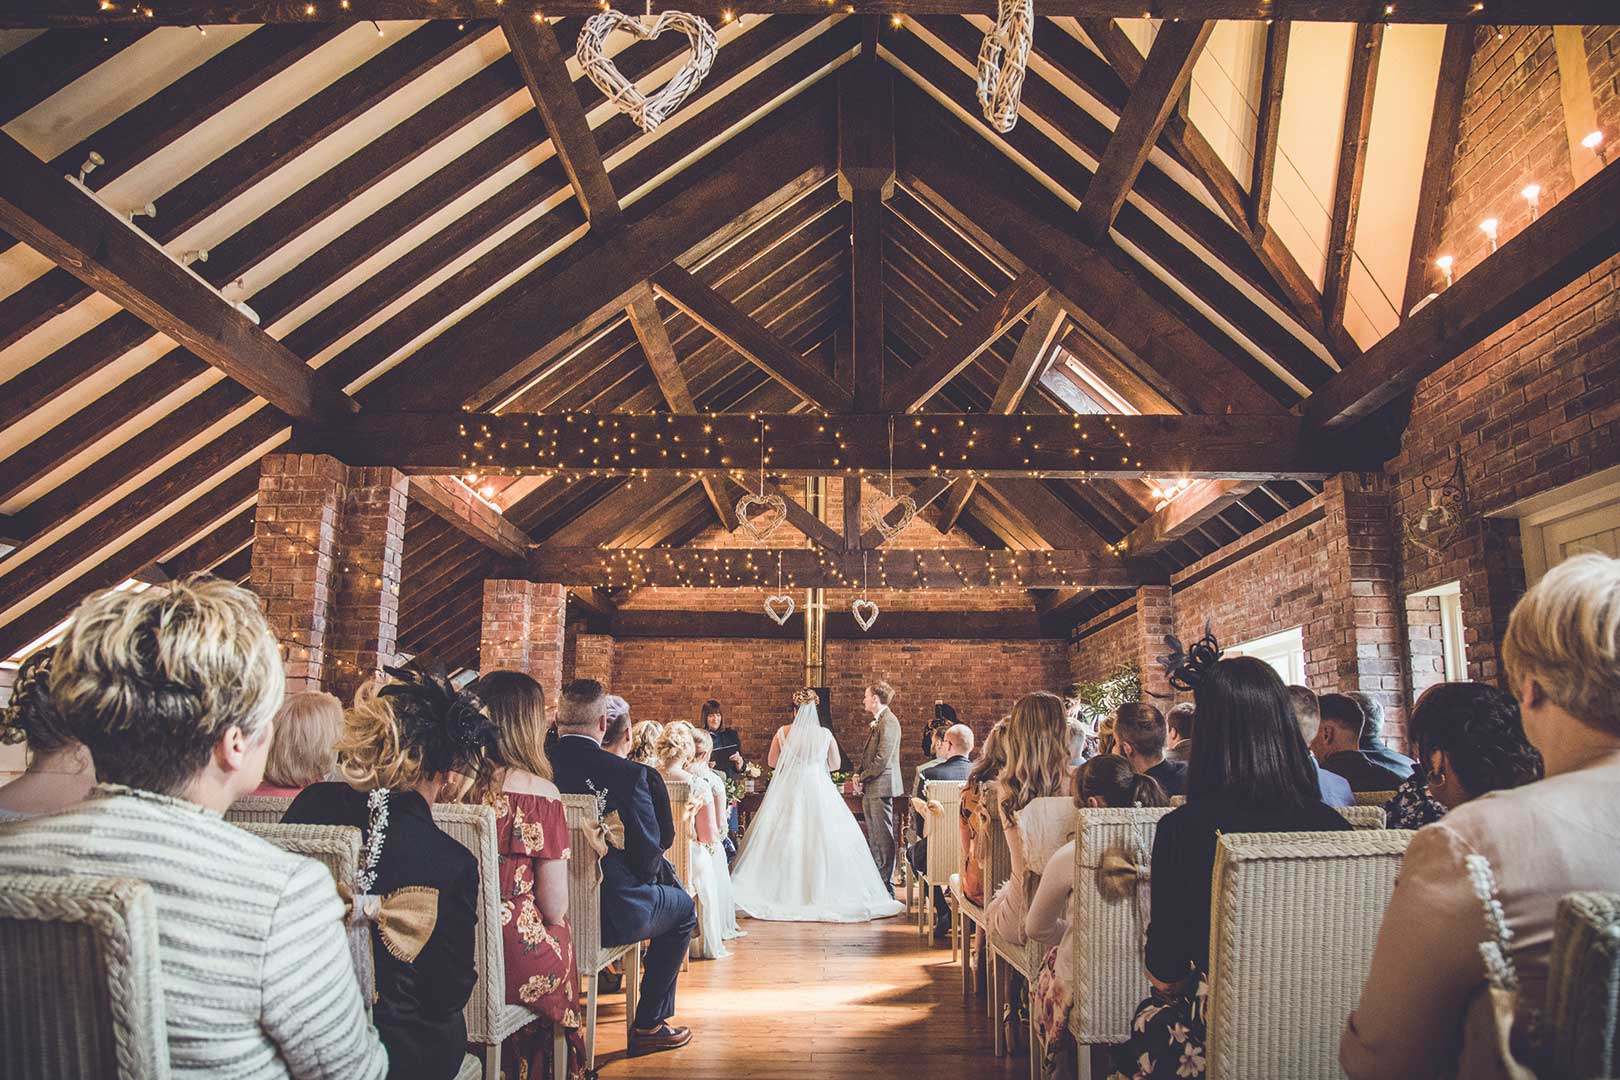 Mr & Mrs Tench wedding in the barn at Abbeywood Estate